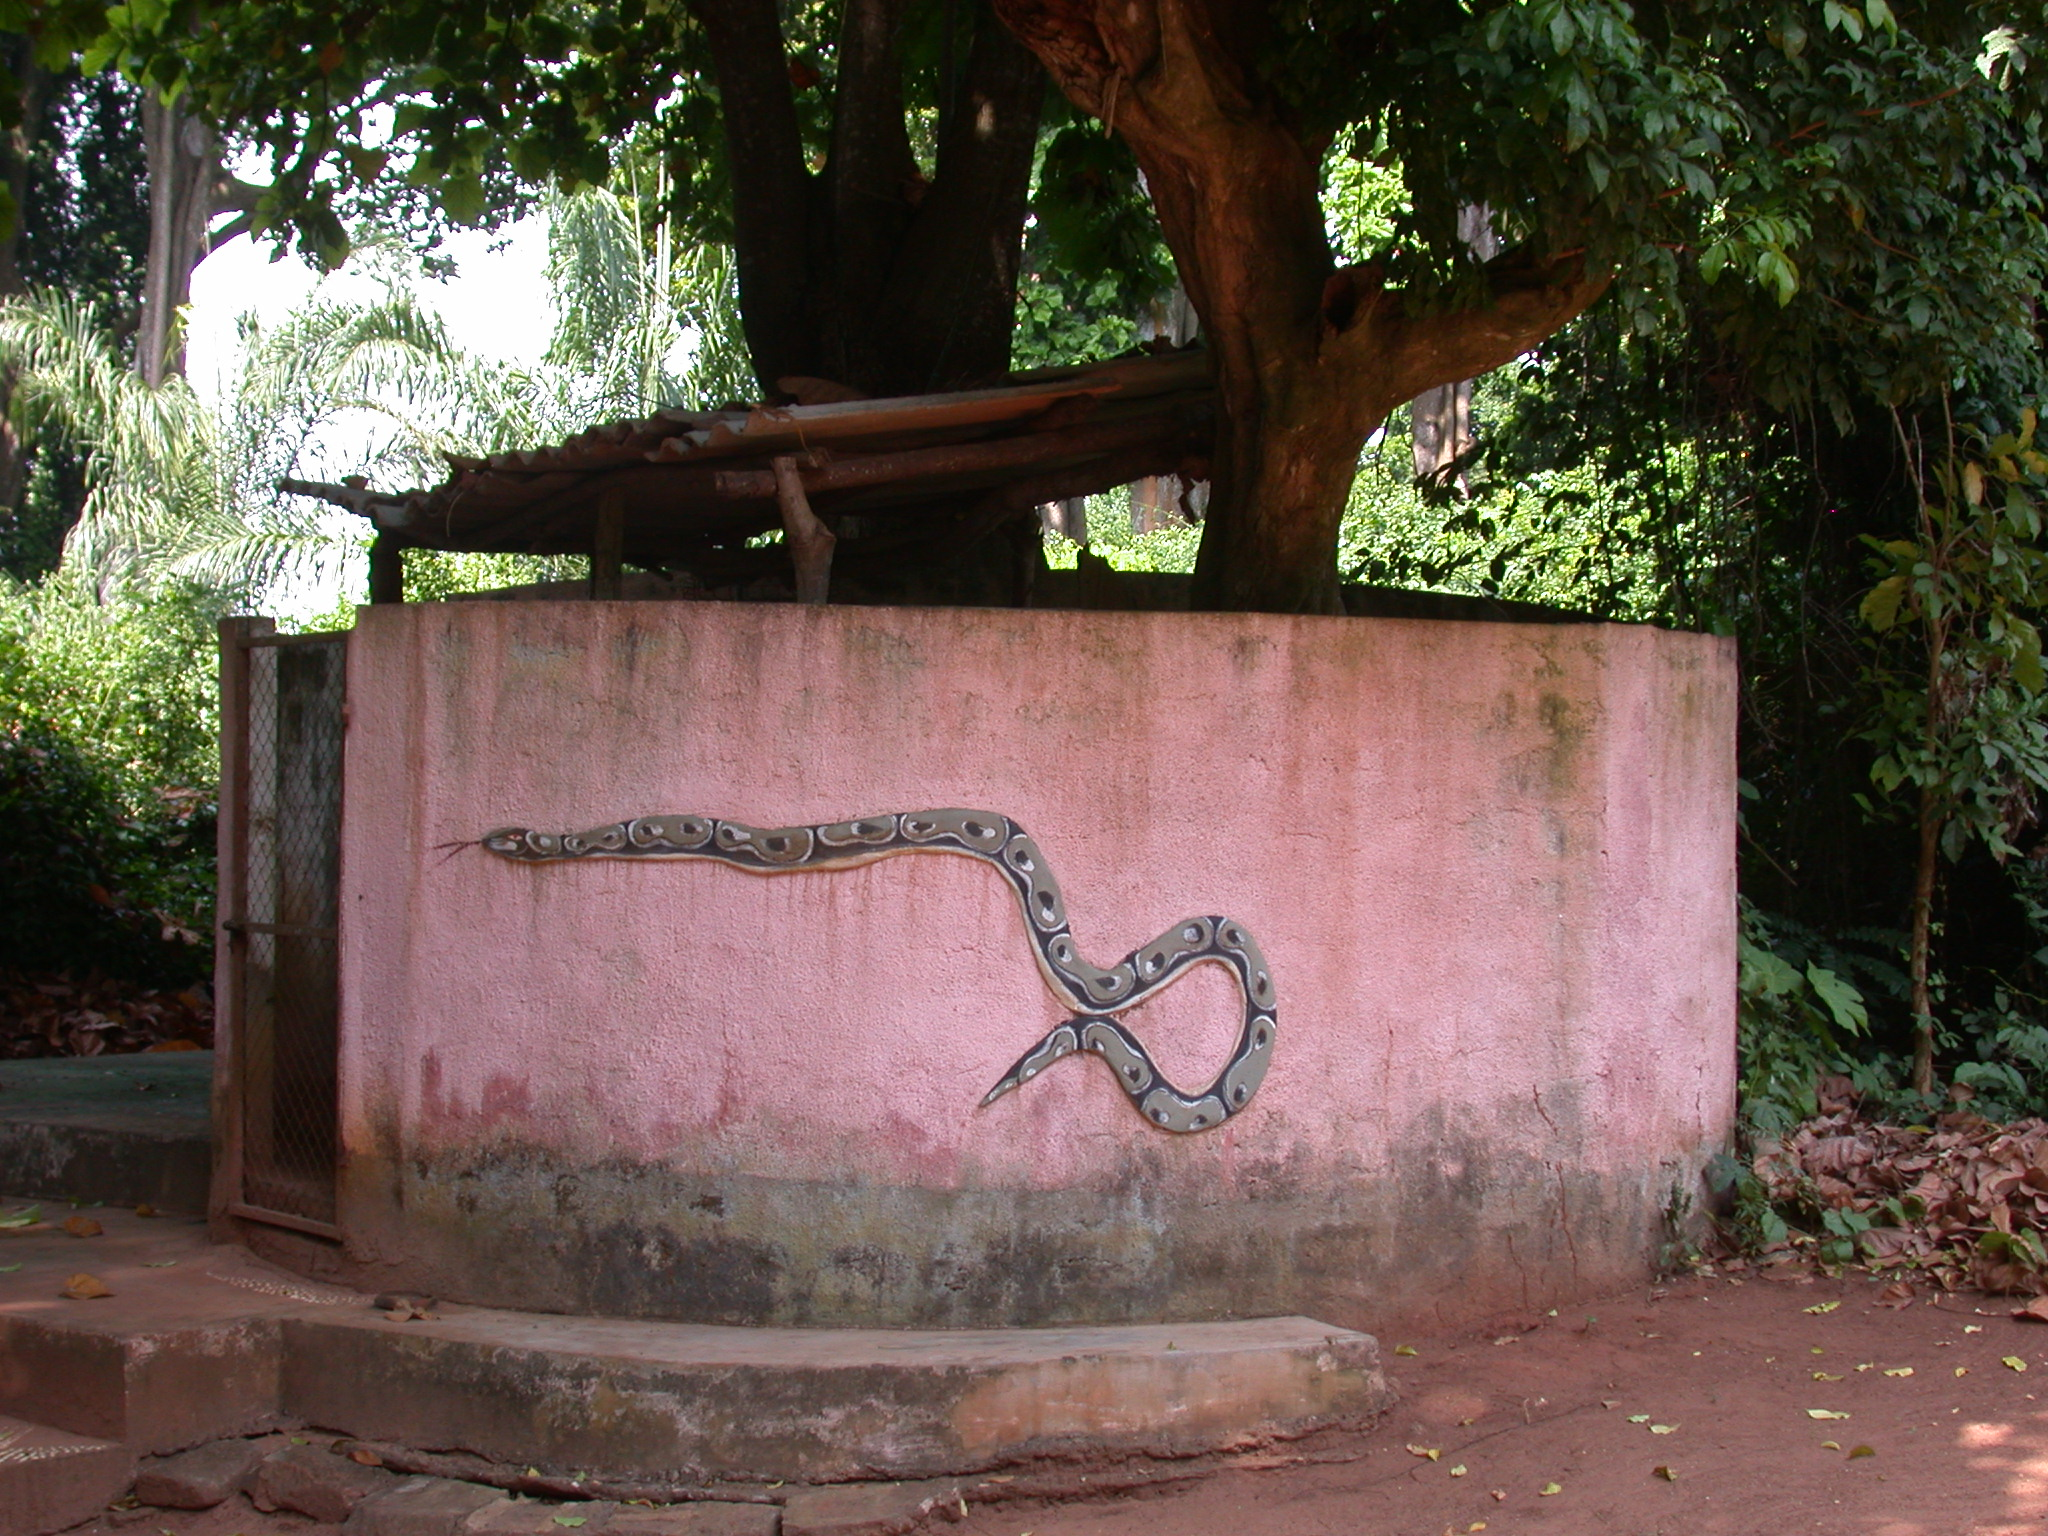 Python Enclosure, Kpasse Sacred Forest, Ouidah, Benin